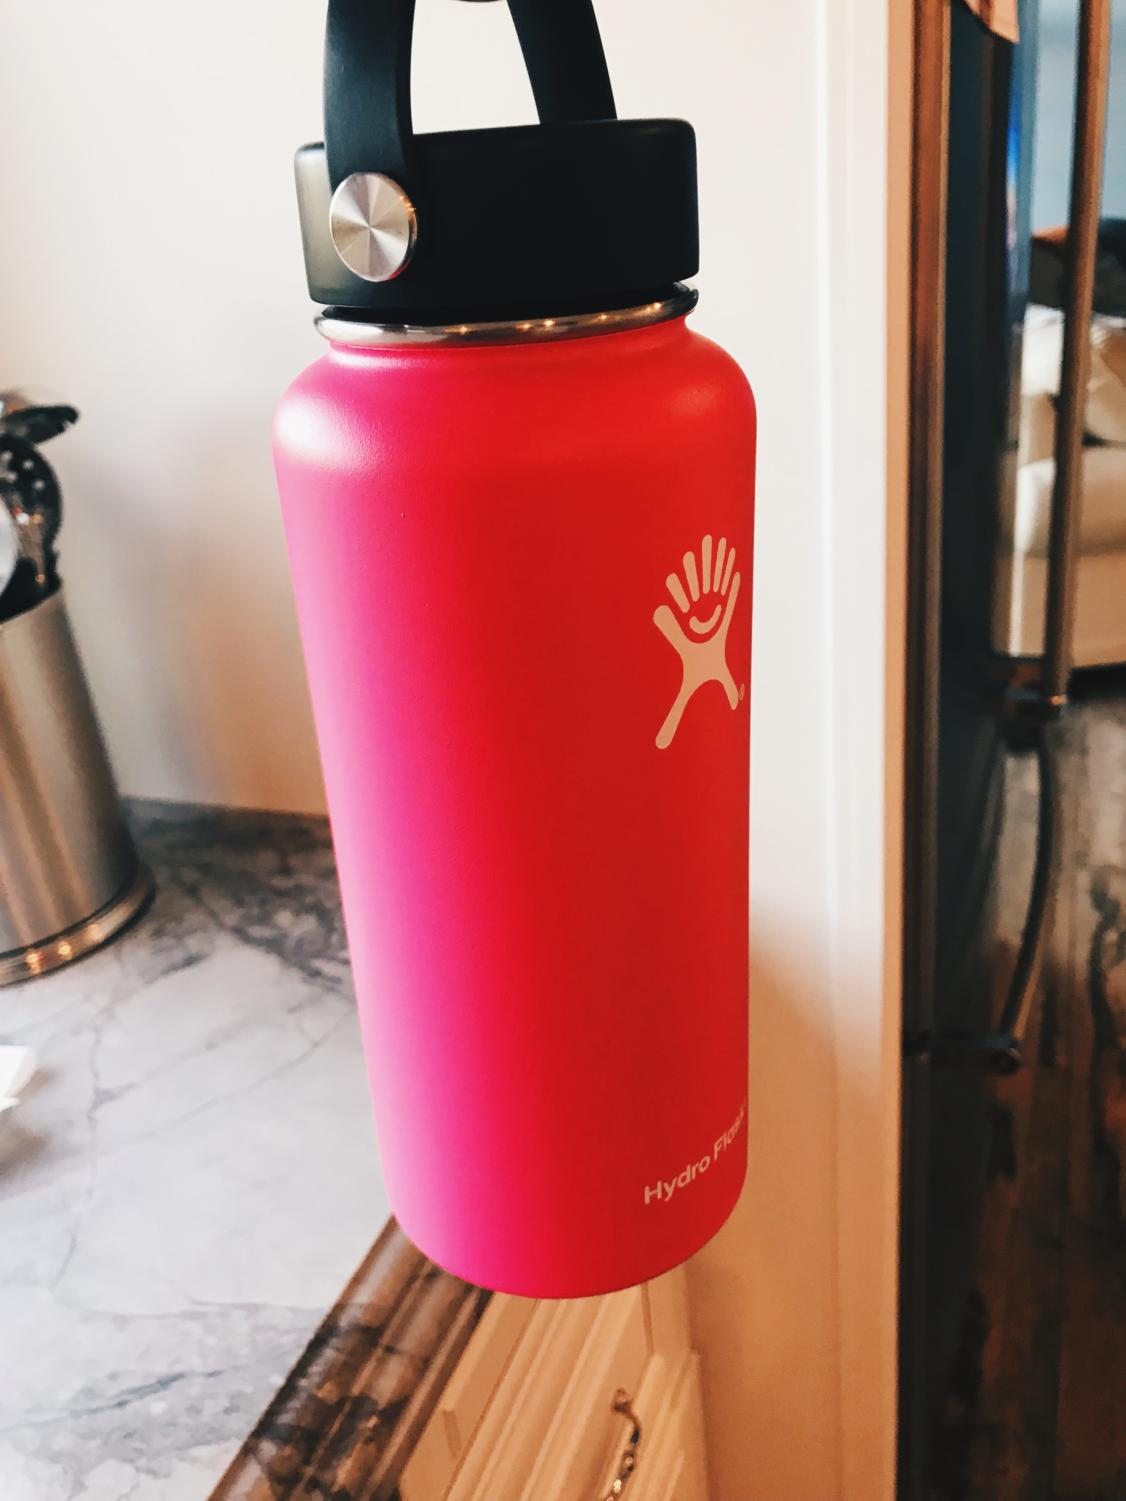 A Hyrdroflask water bottle